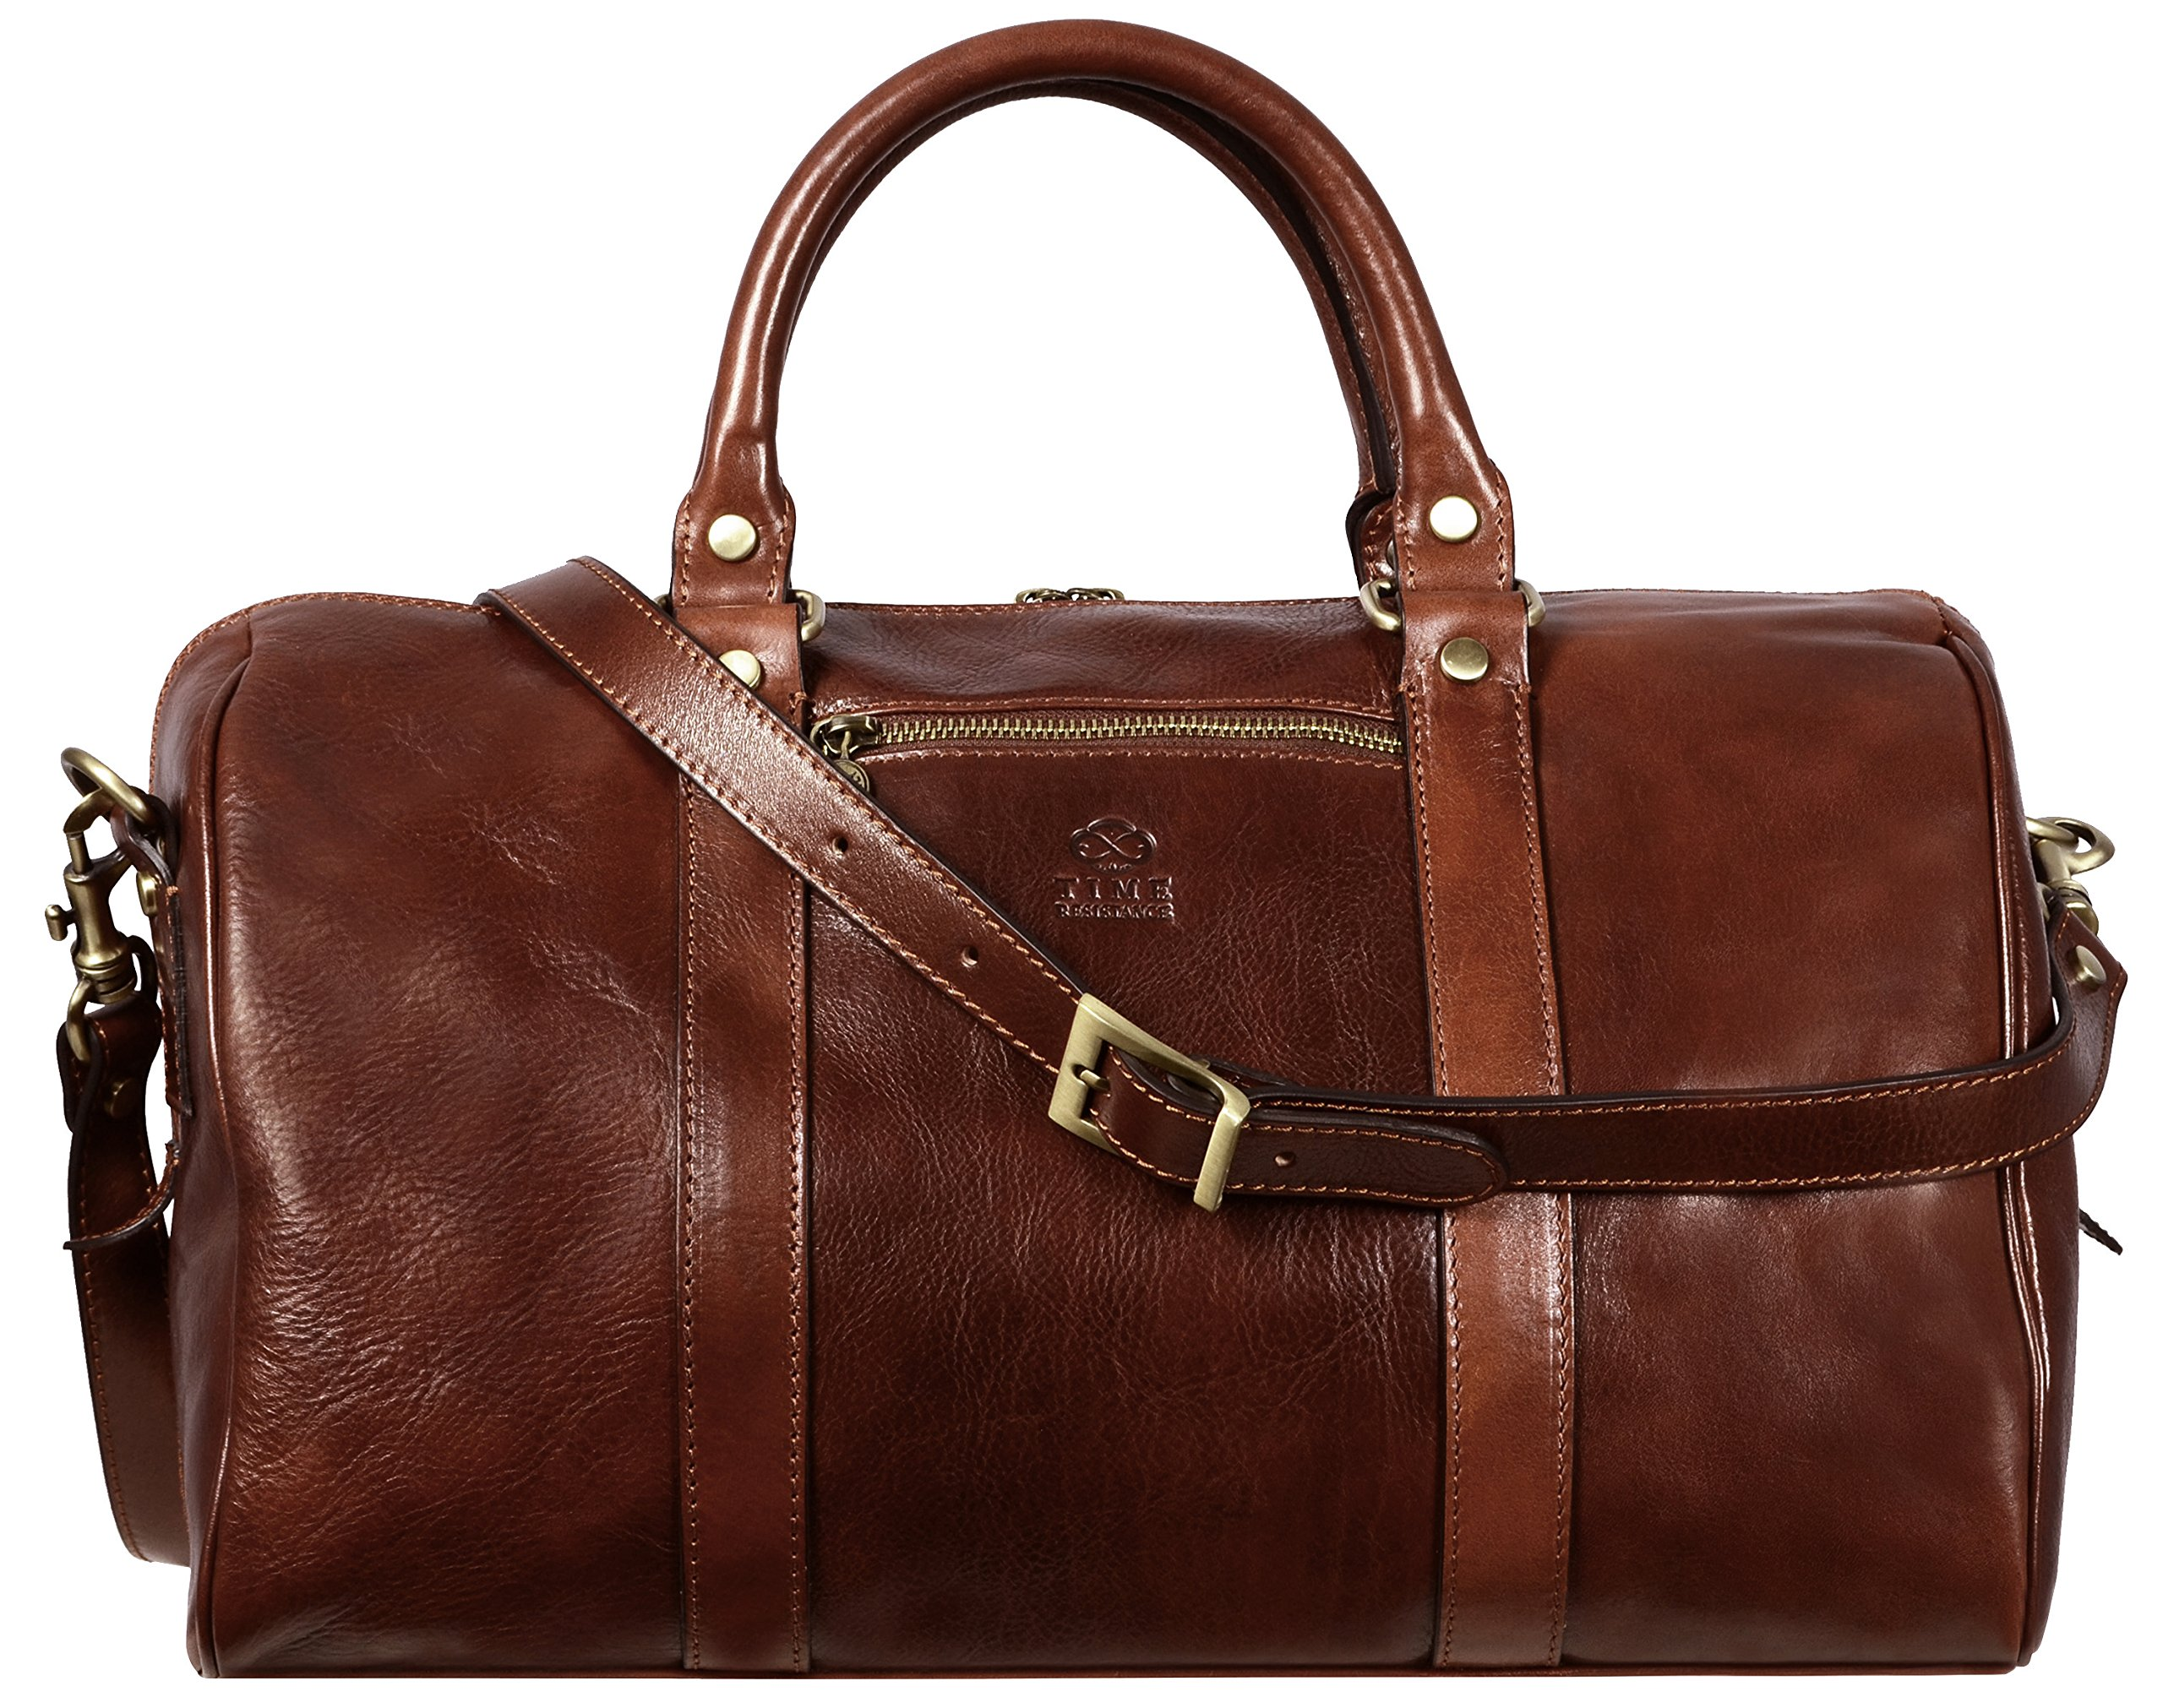 Brown Full Grain Leather Small Duffel Bag, Gym Bag, Weekend Bag Overnight Unisex - Time Resistance